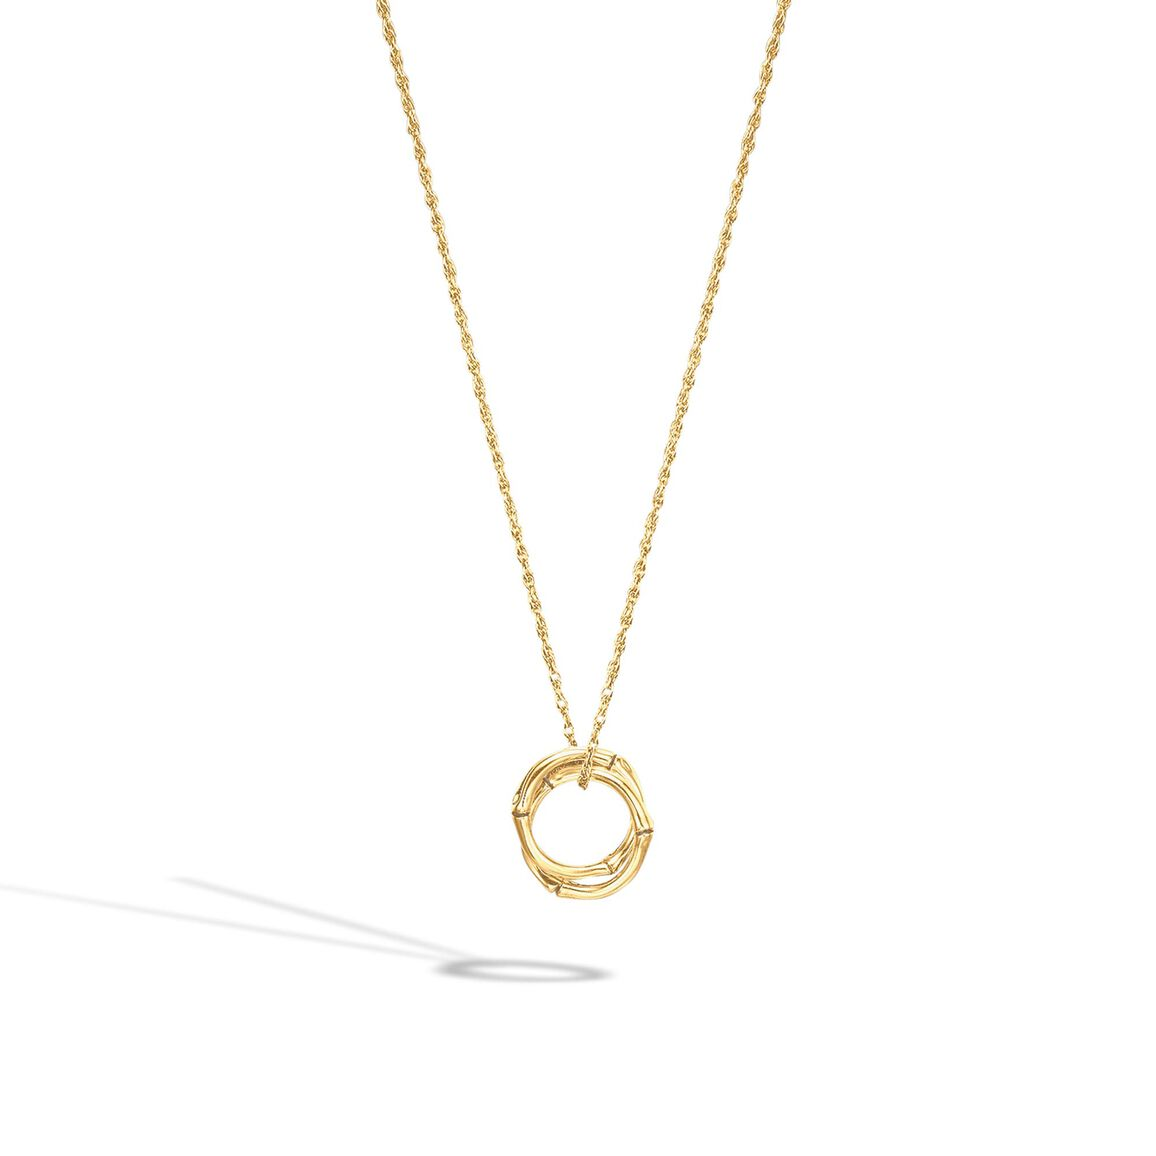 Bamboo Necklace in 18K Gold